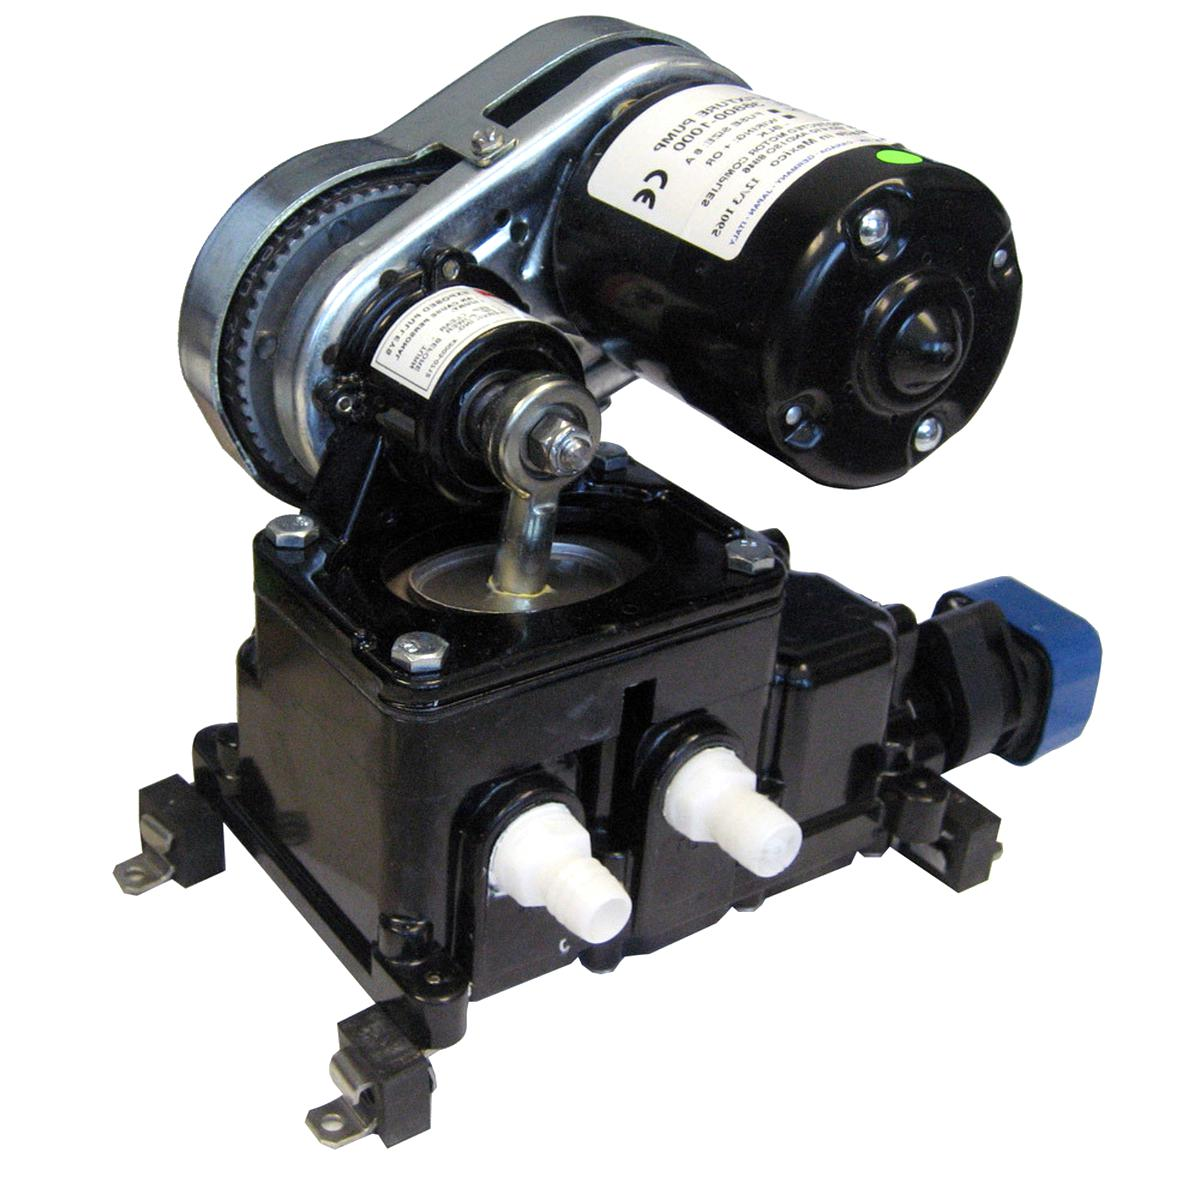 jabsco water pump for sale